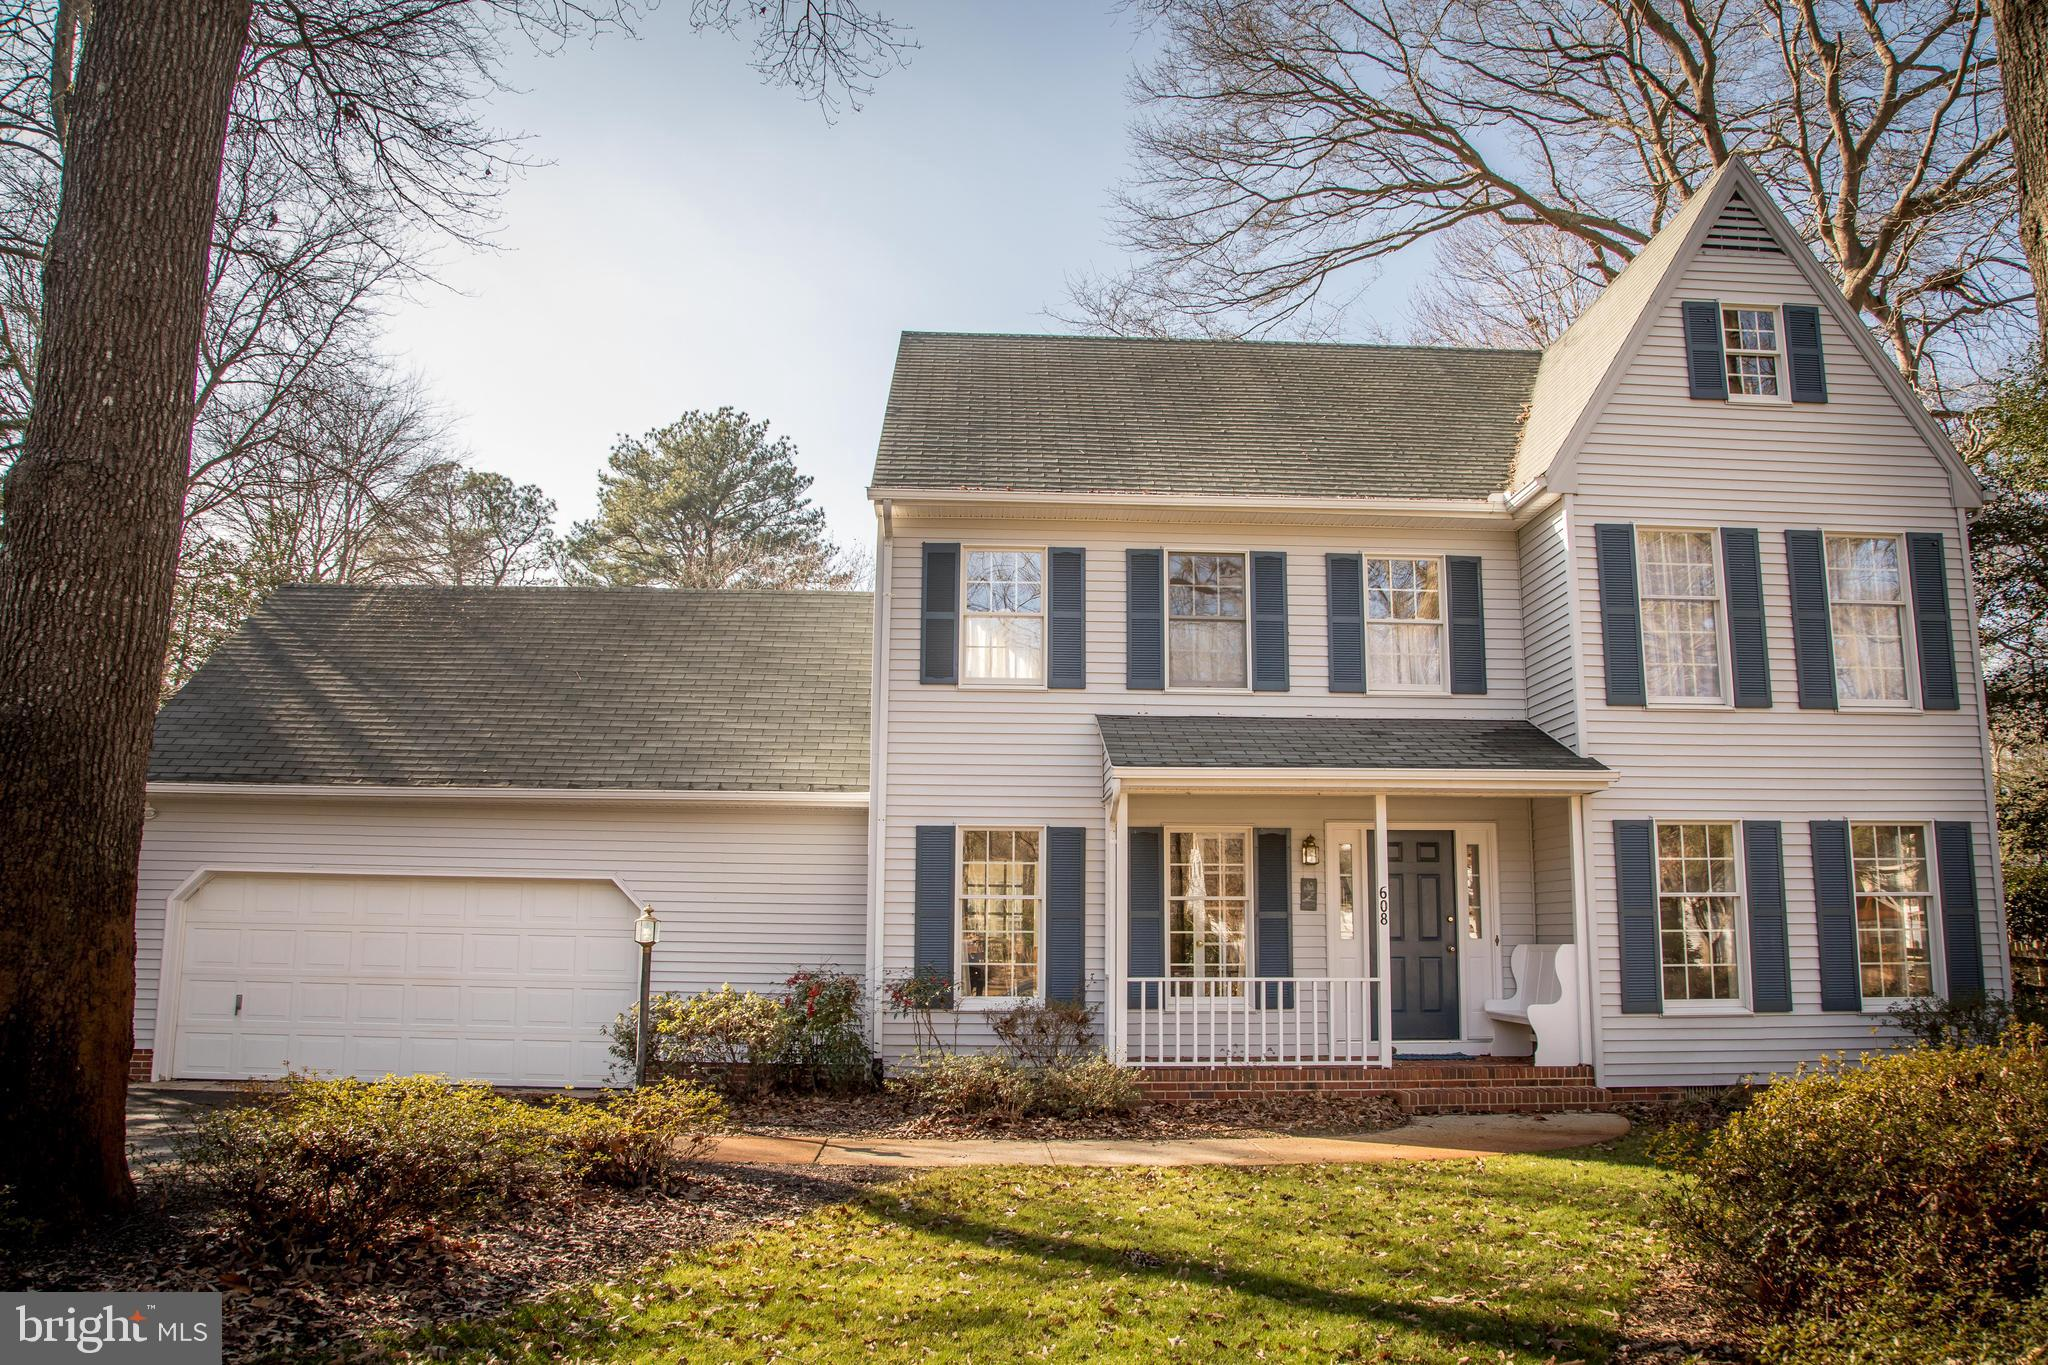 Open House!! Sunday, January 26th, 12:00 - 2:00pm!! Take a look at this beautiful 3 bedroom, 2.5 bat